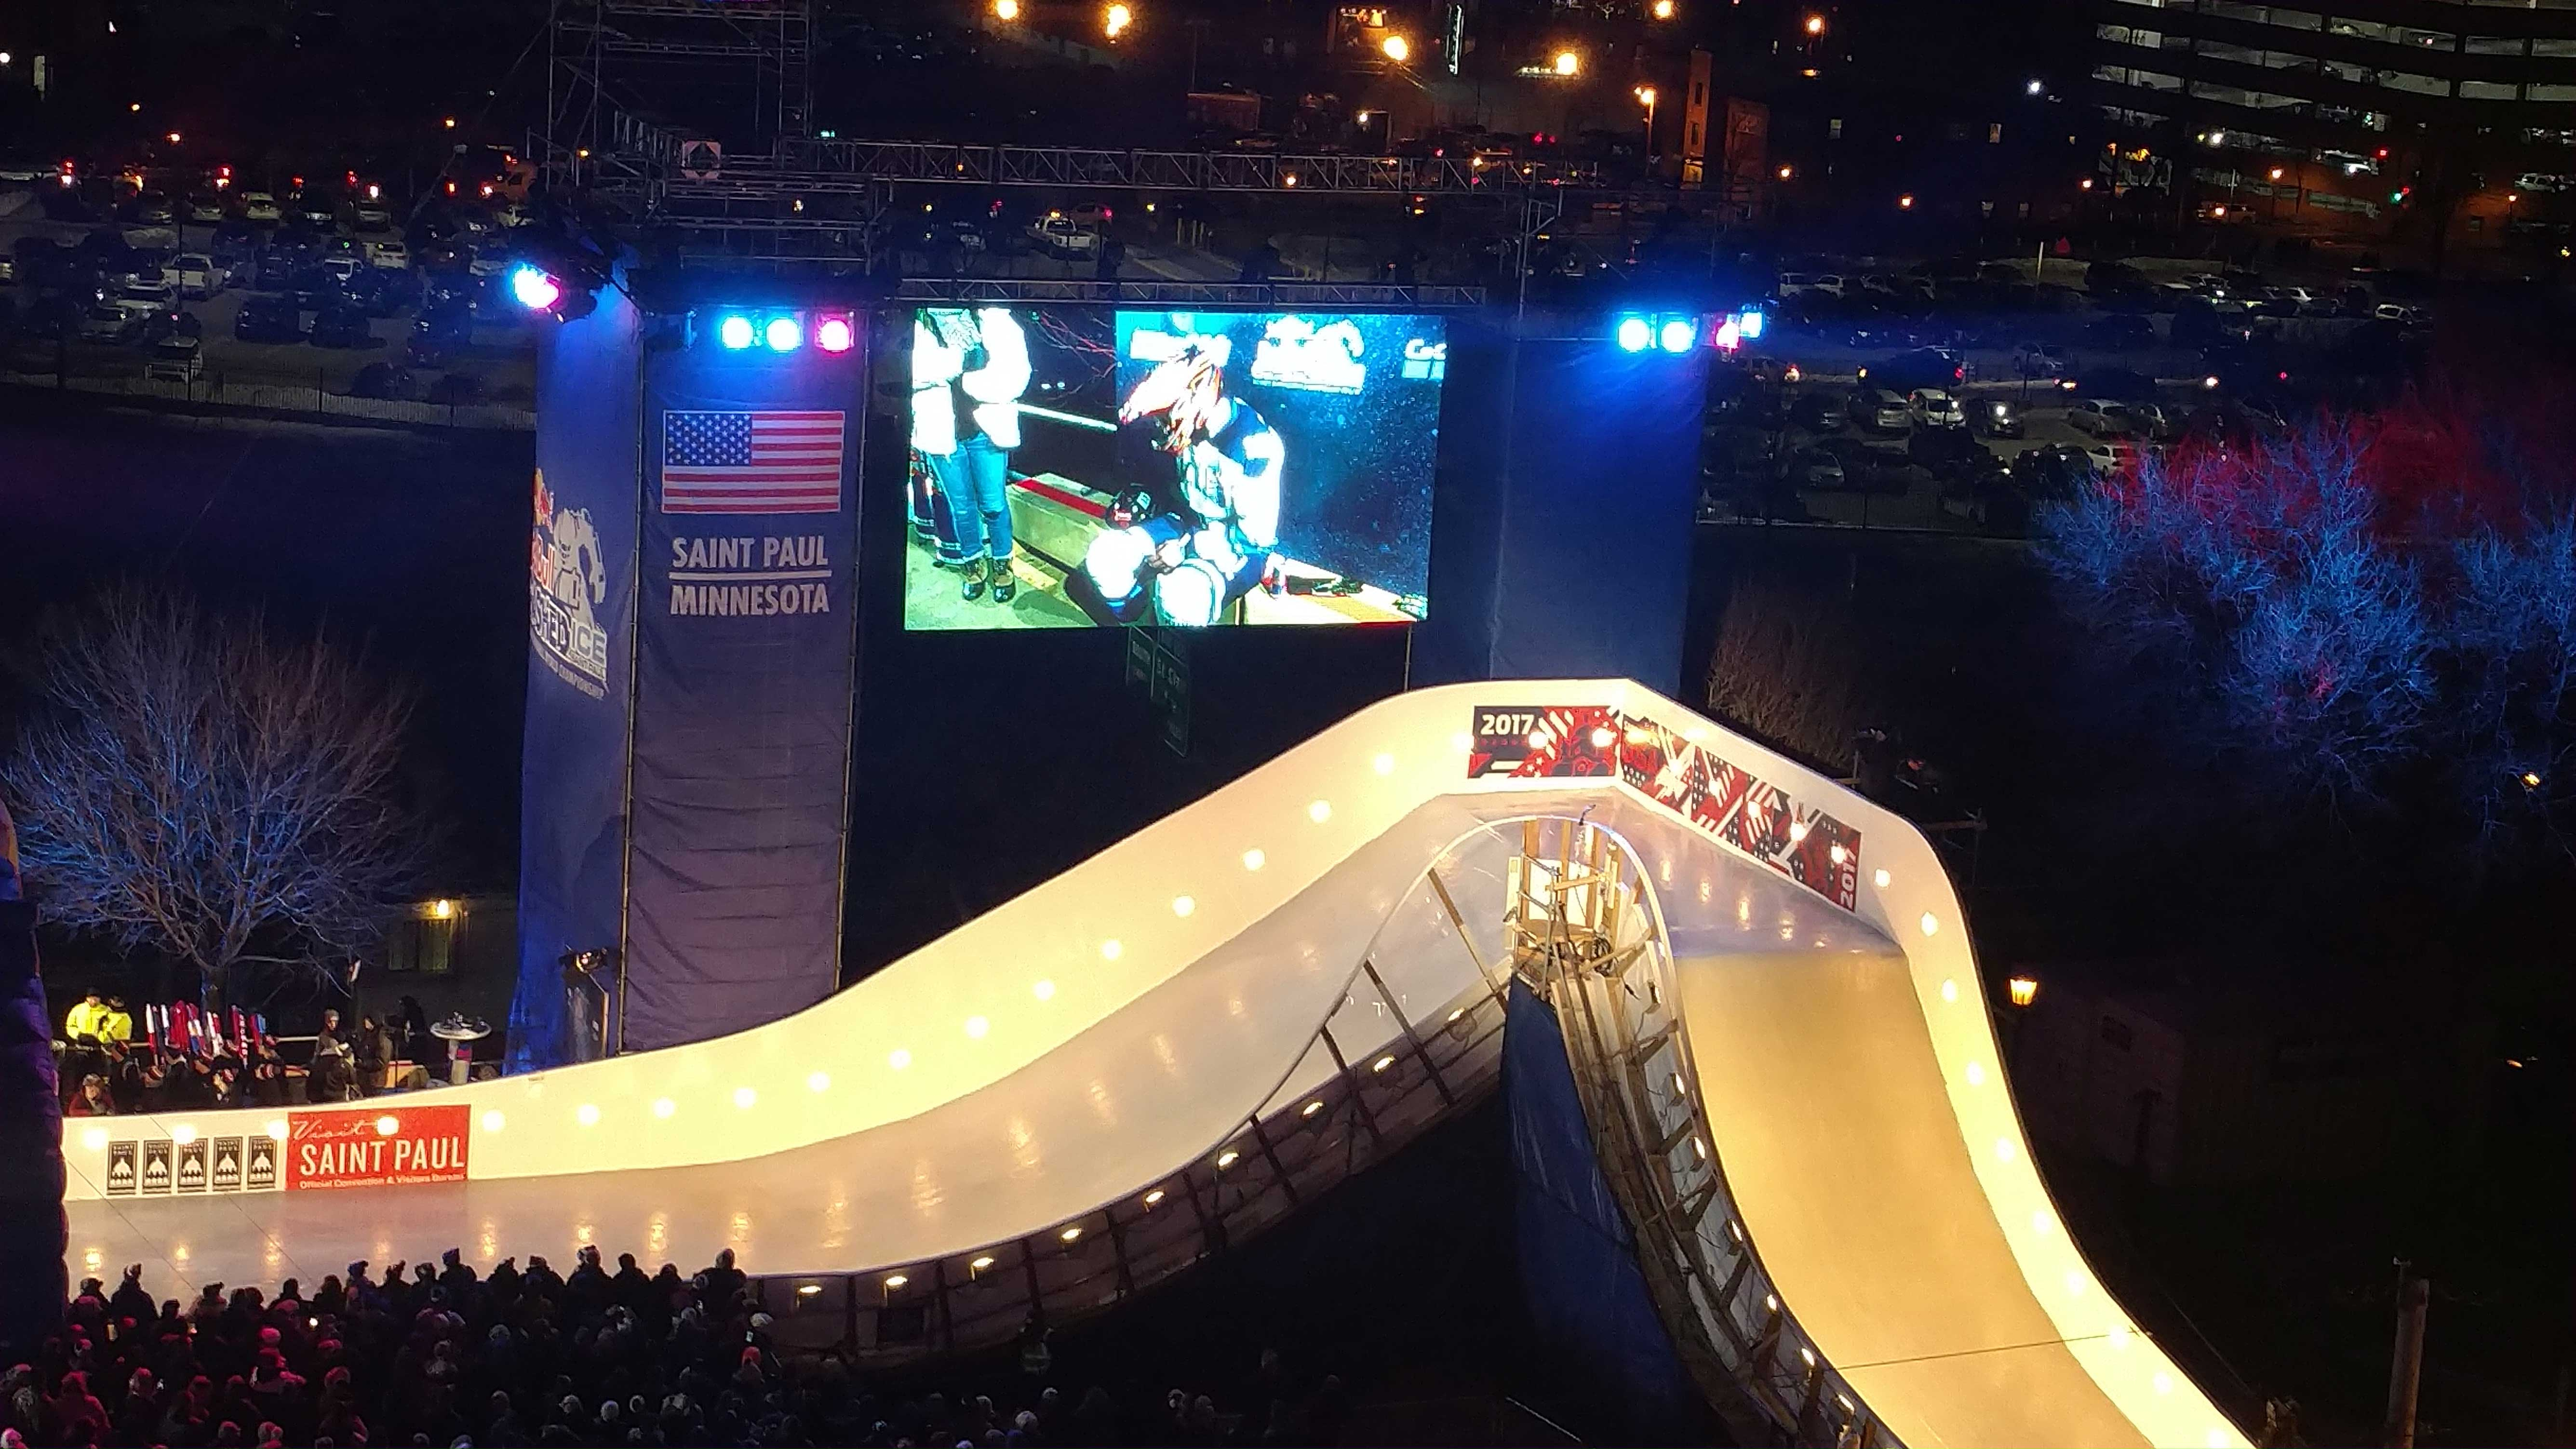 Crashed Ice Event in St Paul